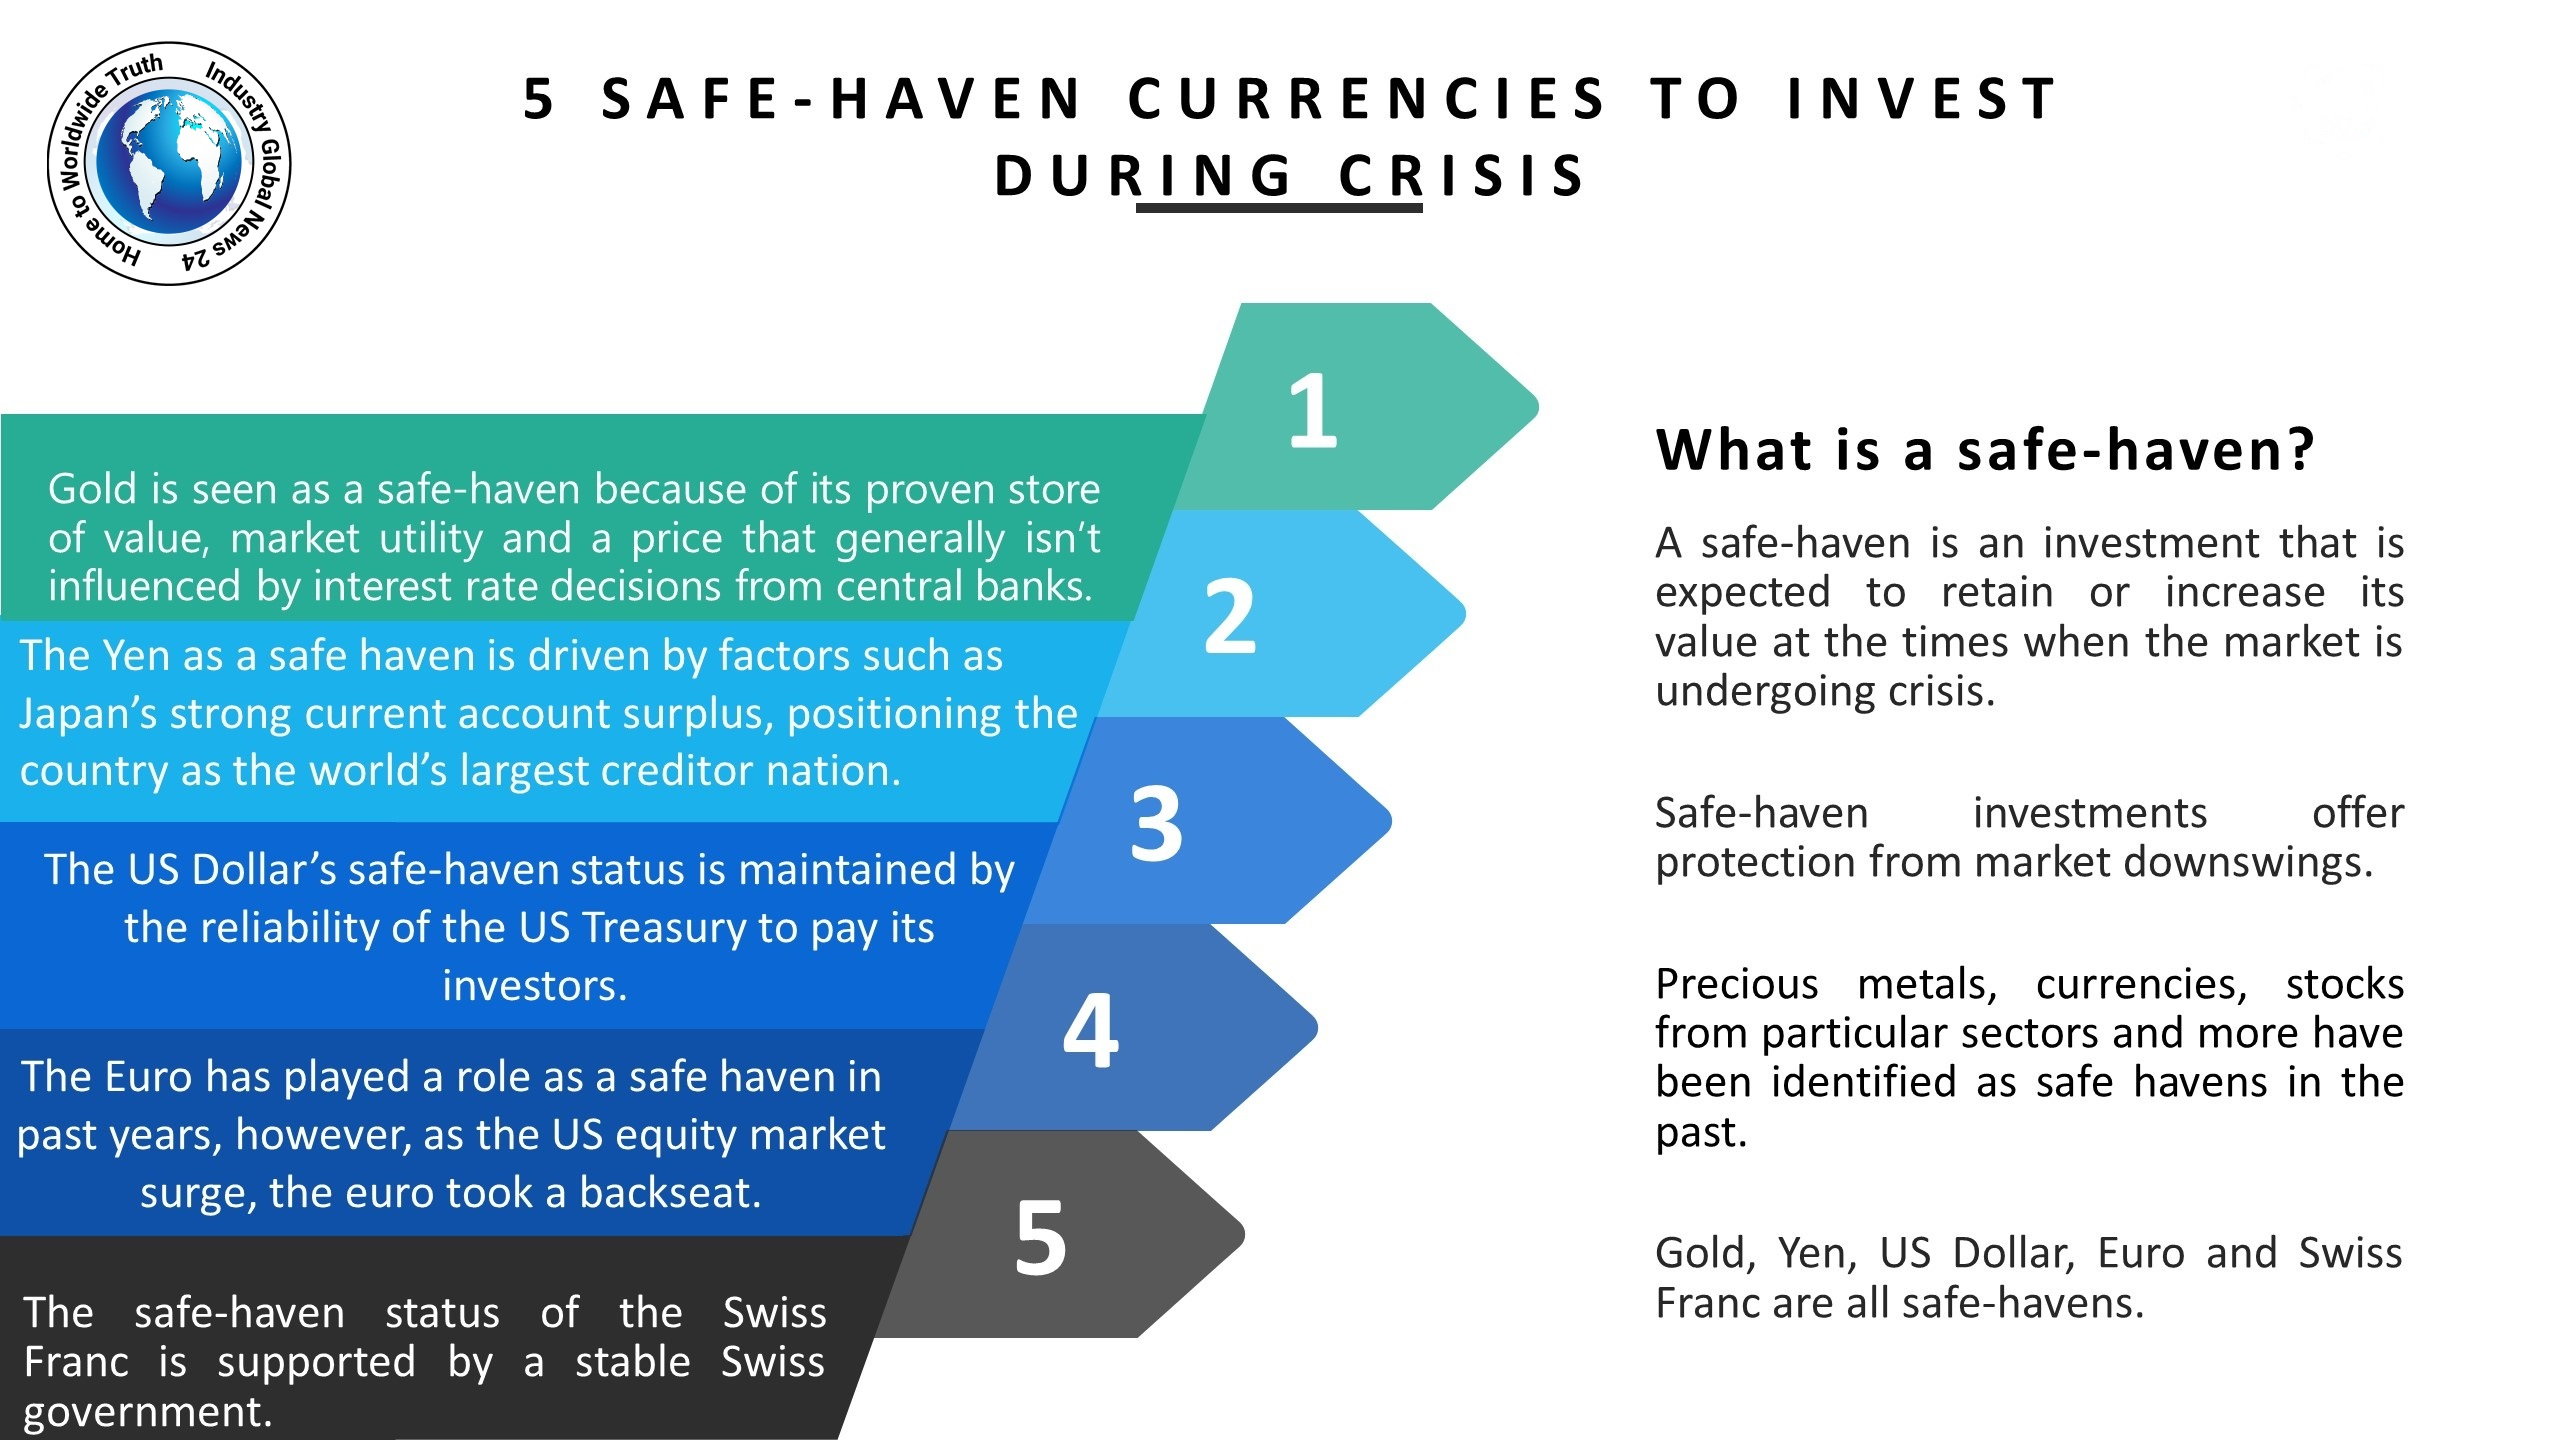 5 Safe-Heaven Currencies To Invest During Crises